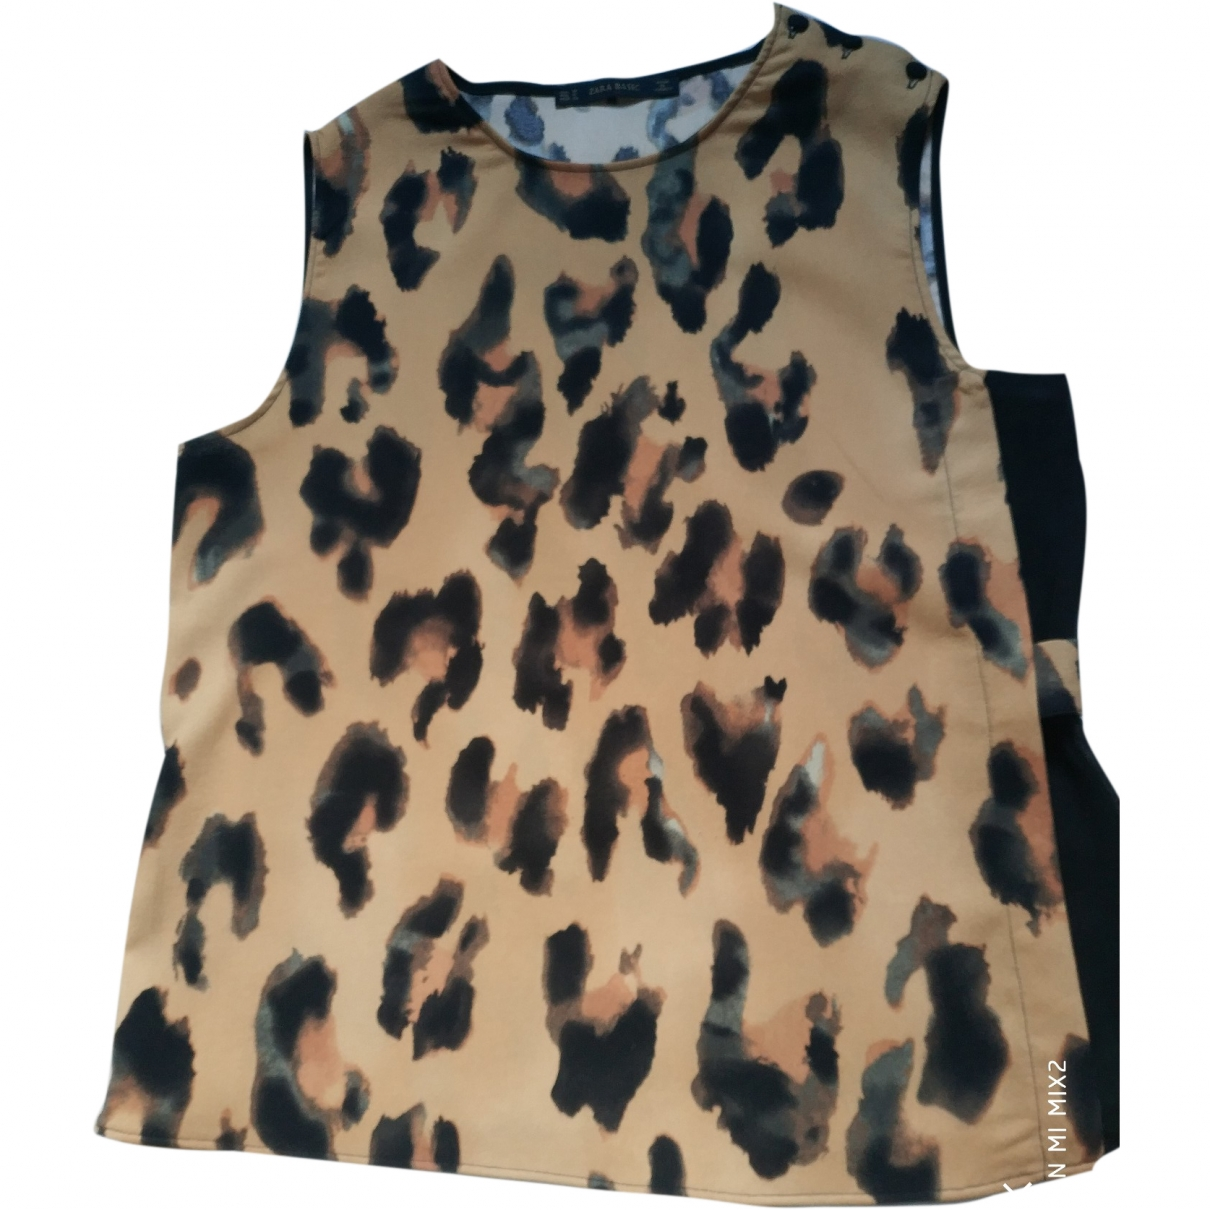 Zara \N Camel  top for Women M